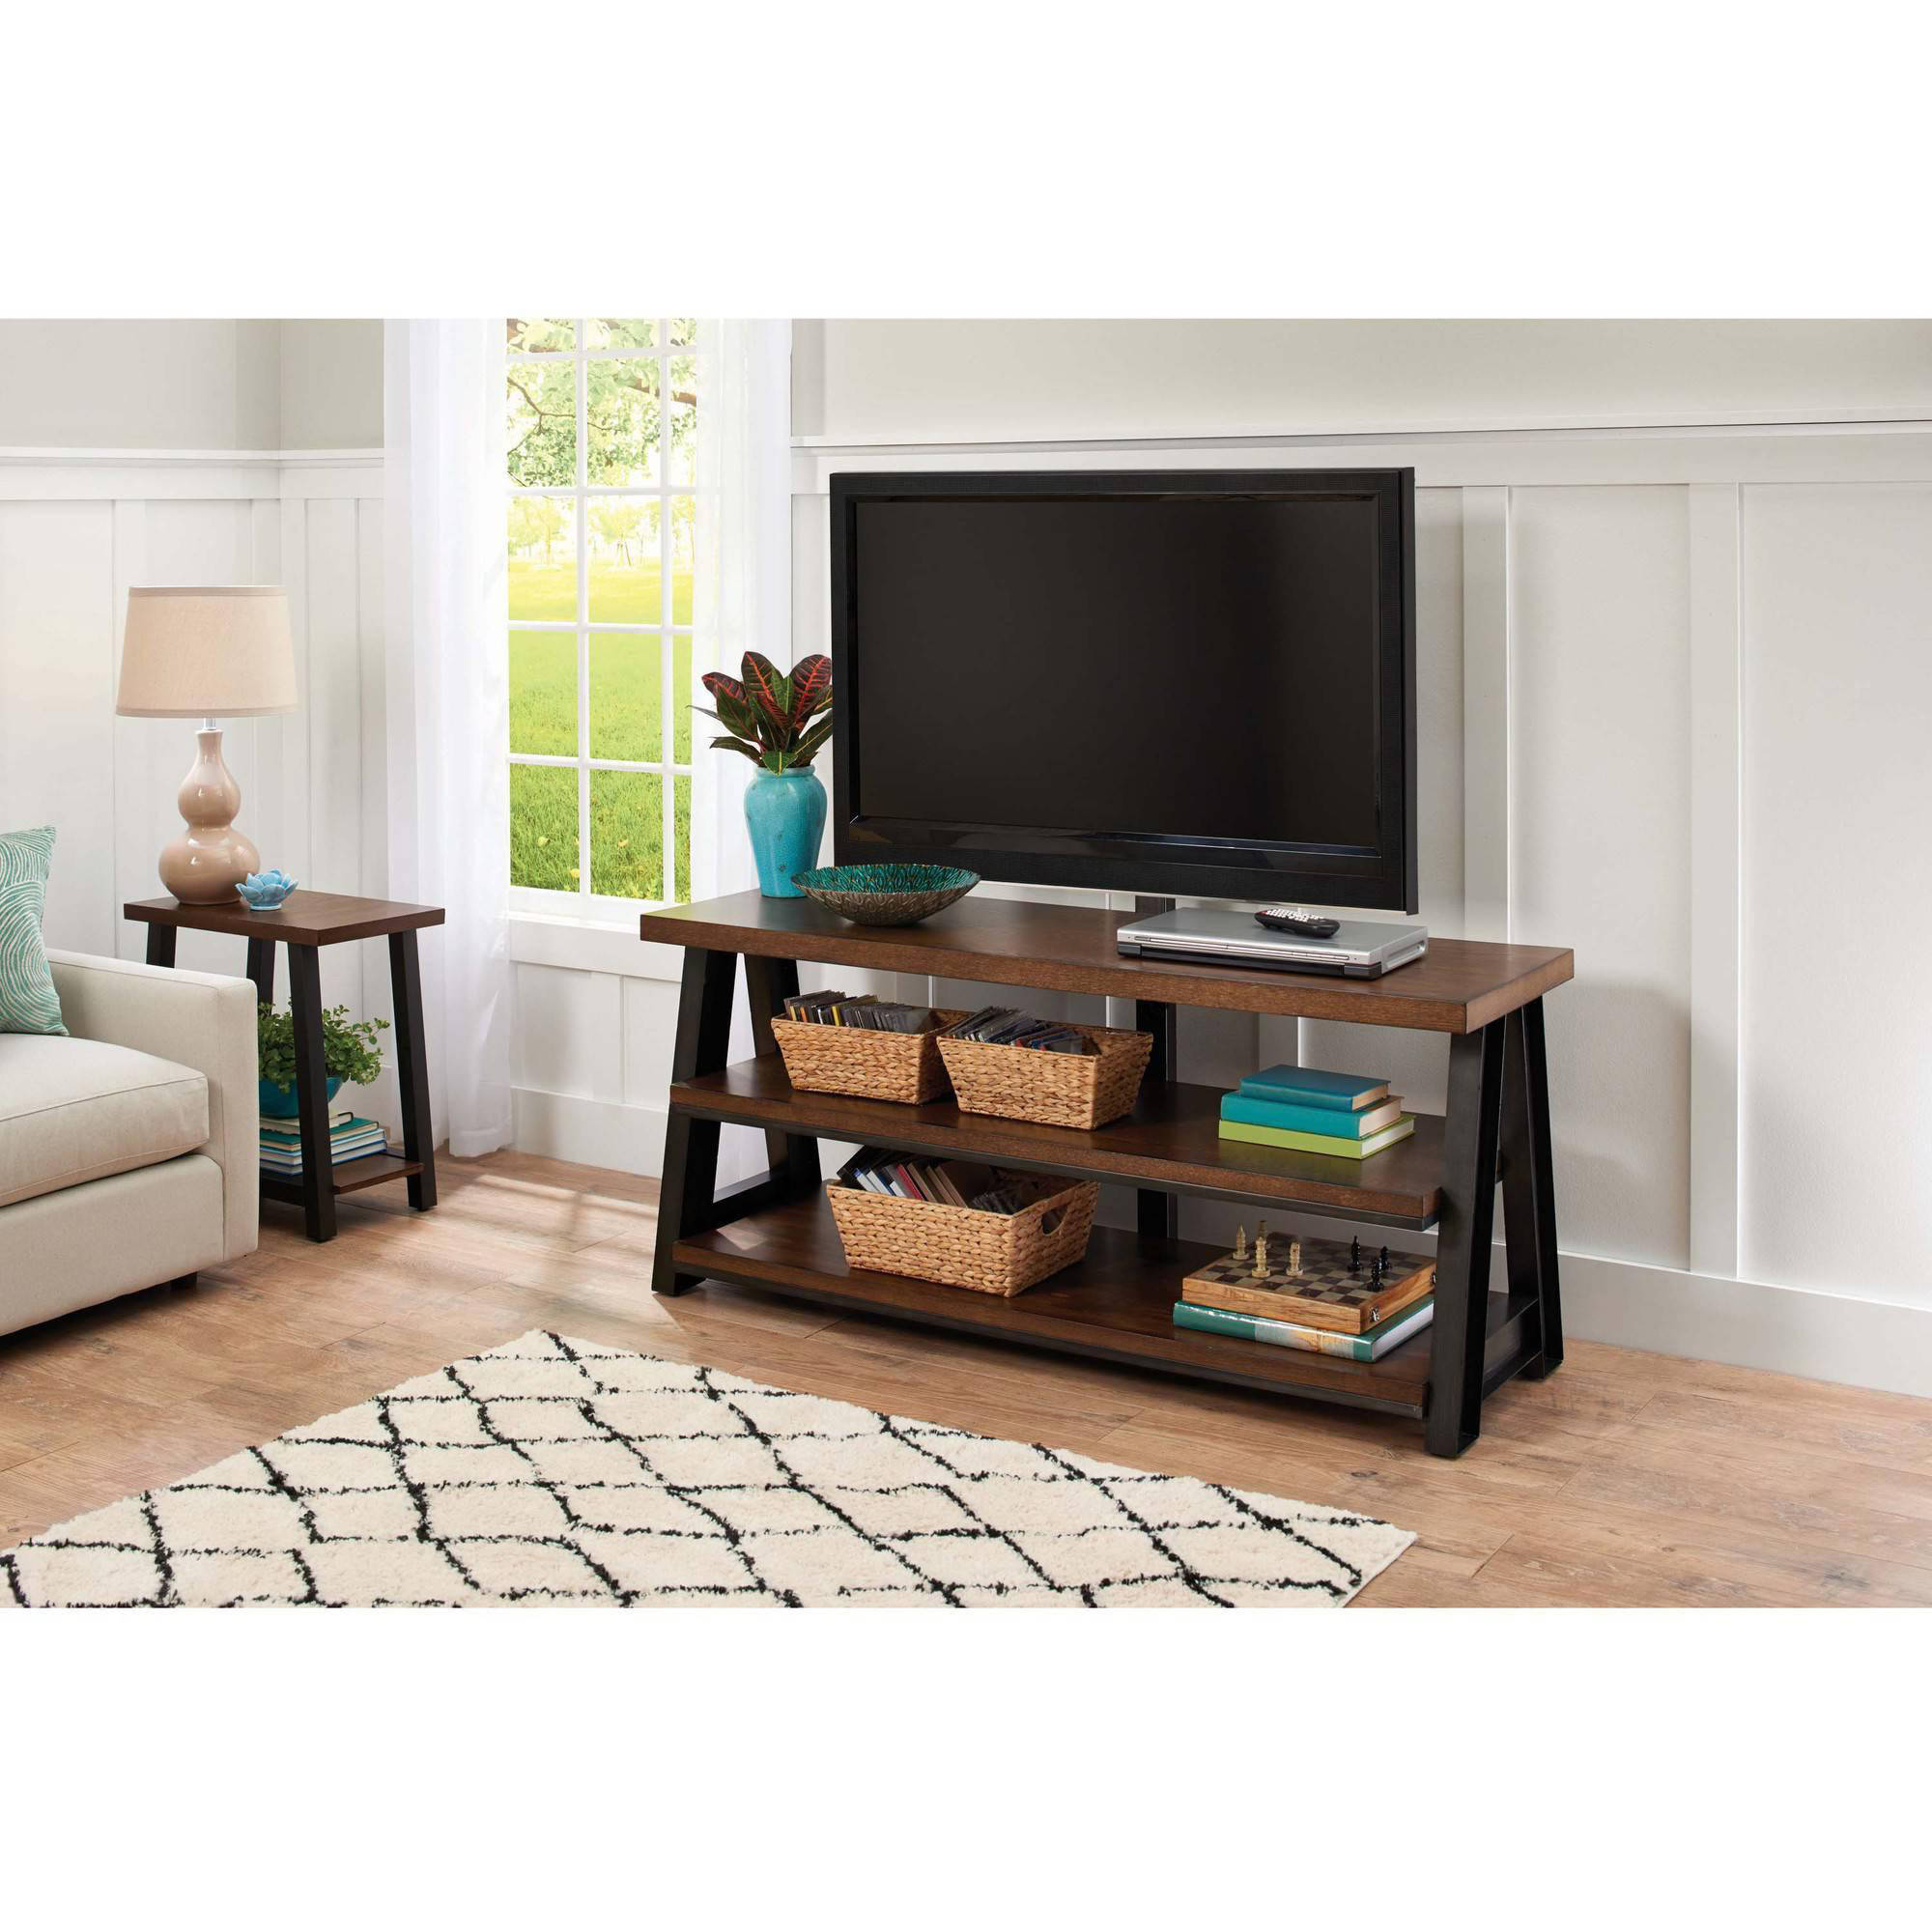 Better Homes and Gardens Mercer 3 in 1 Brown TV Stand for TVs up